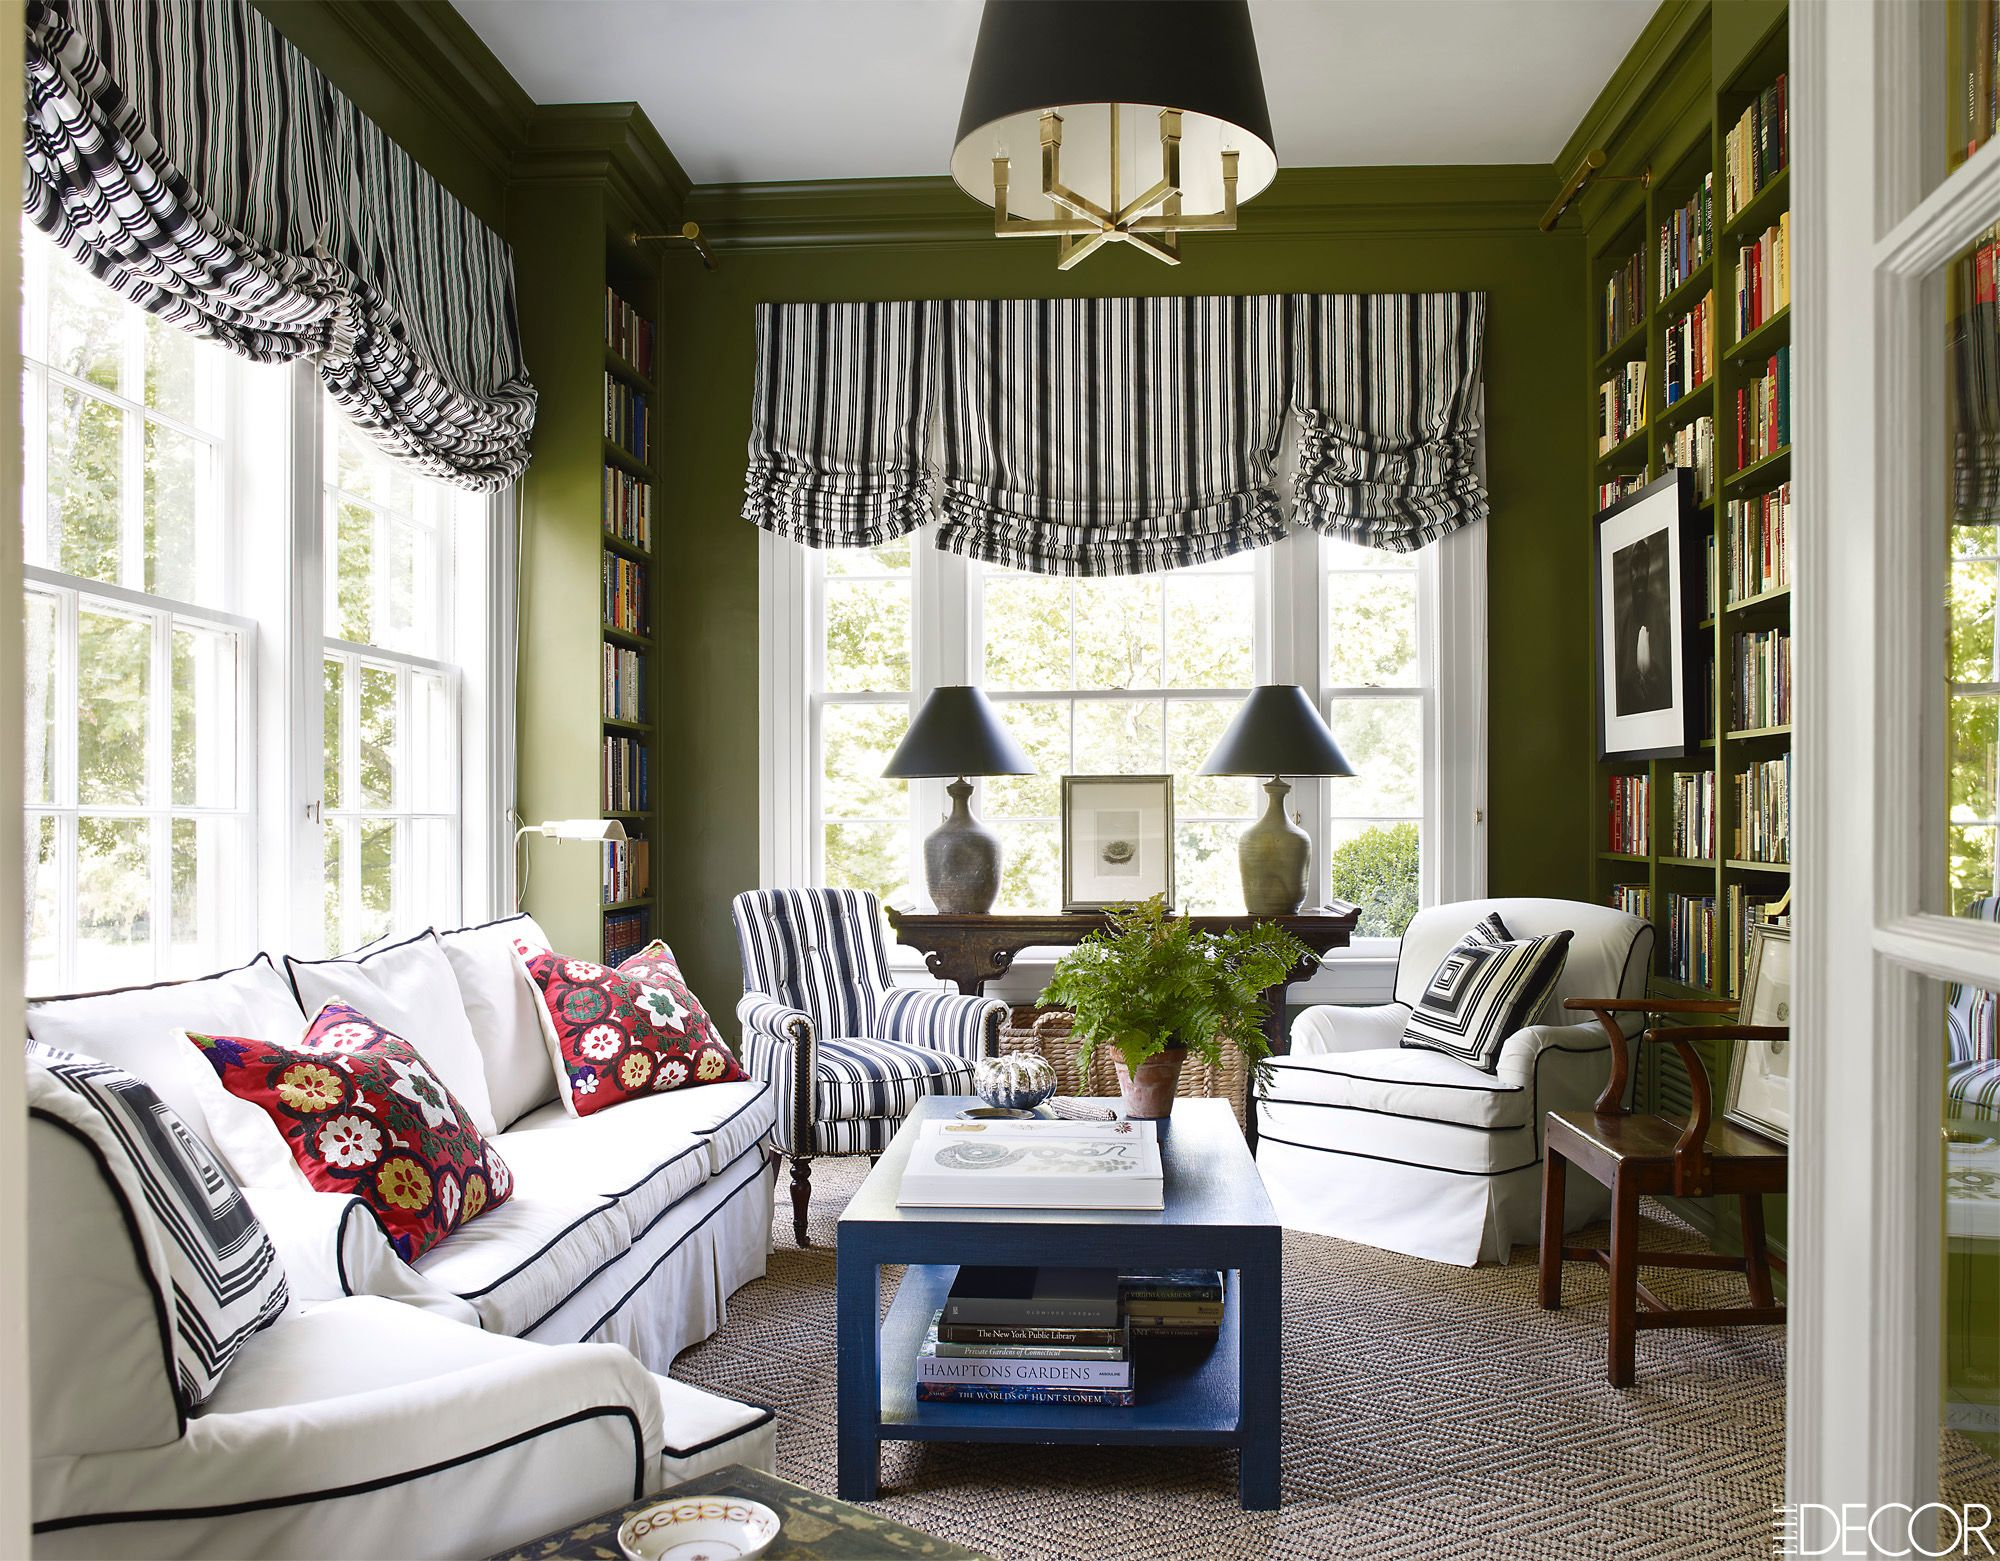 paint colors small bedrooms images%0A Twentyfive rooms decked out in what just might be the color of the season